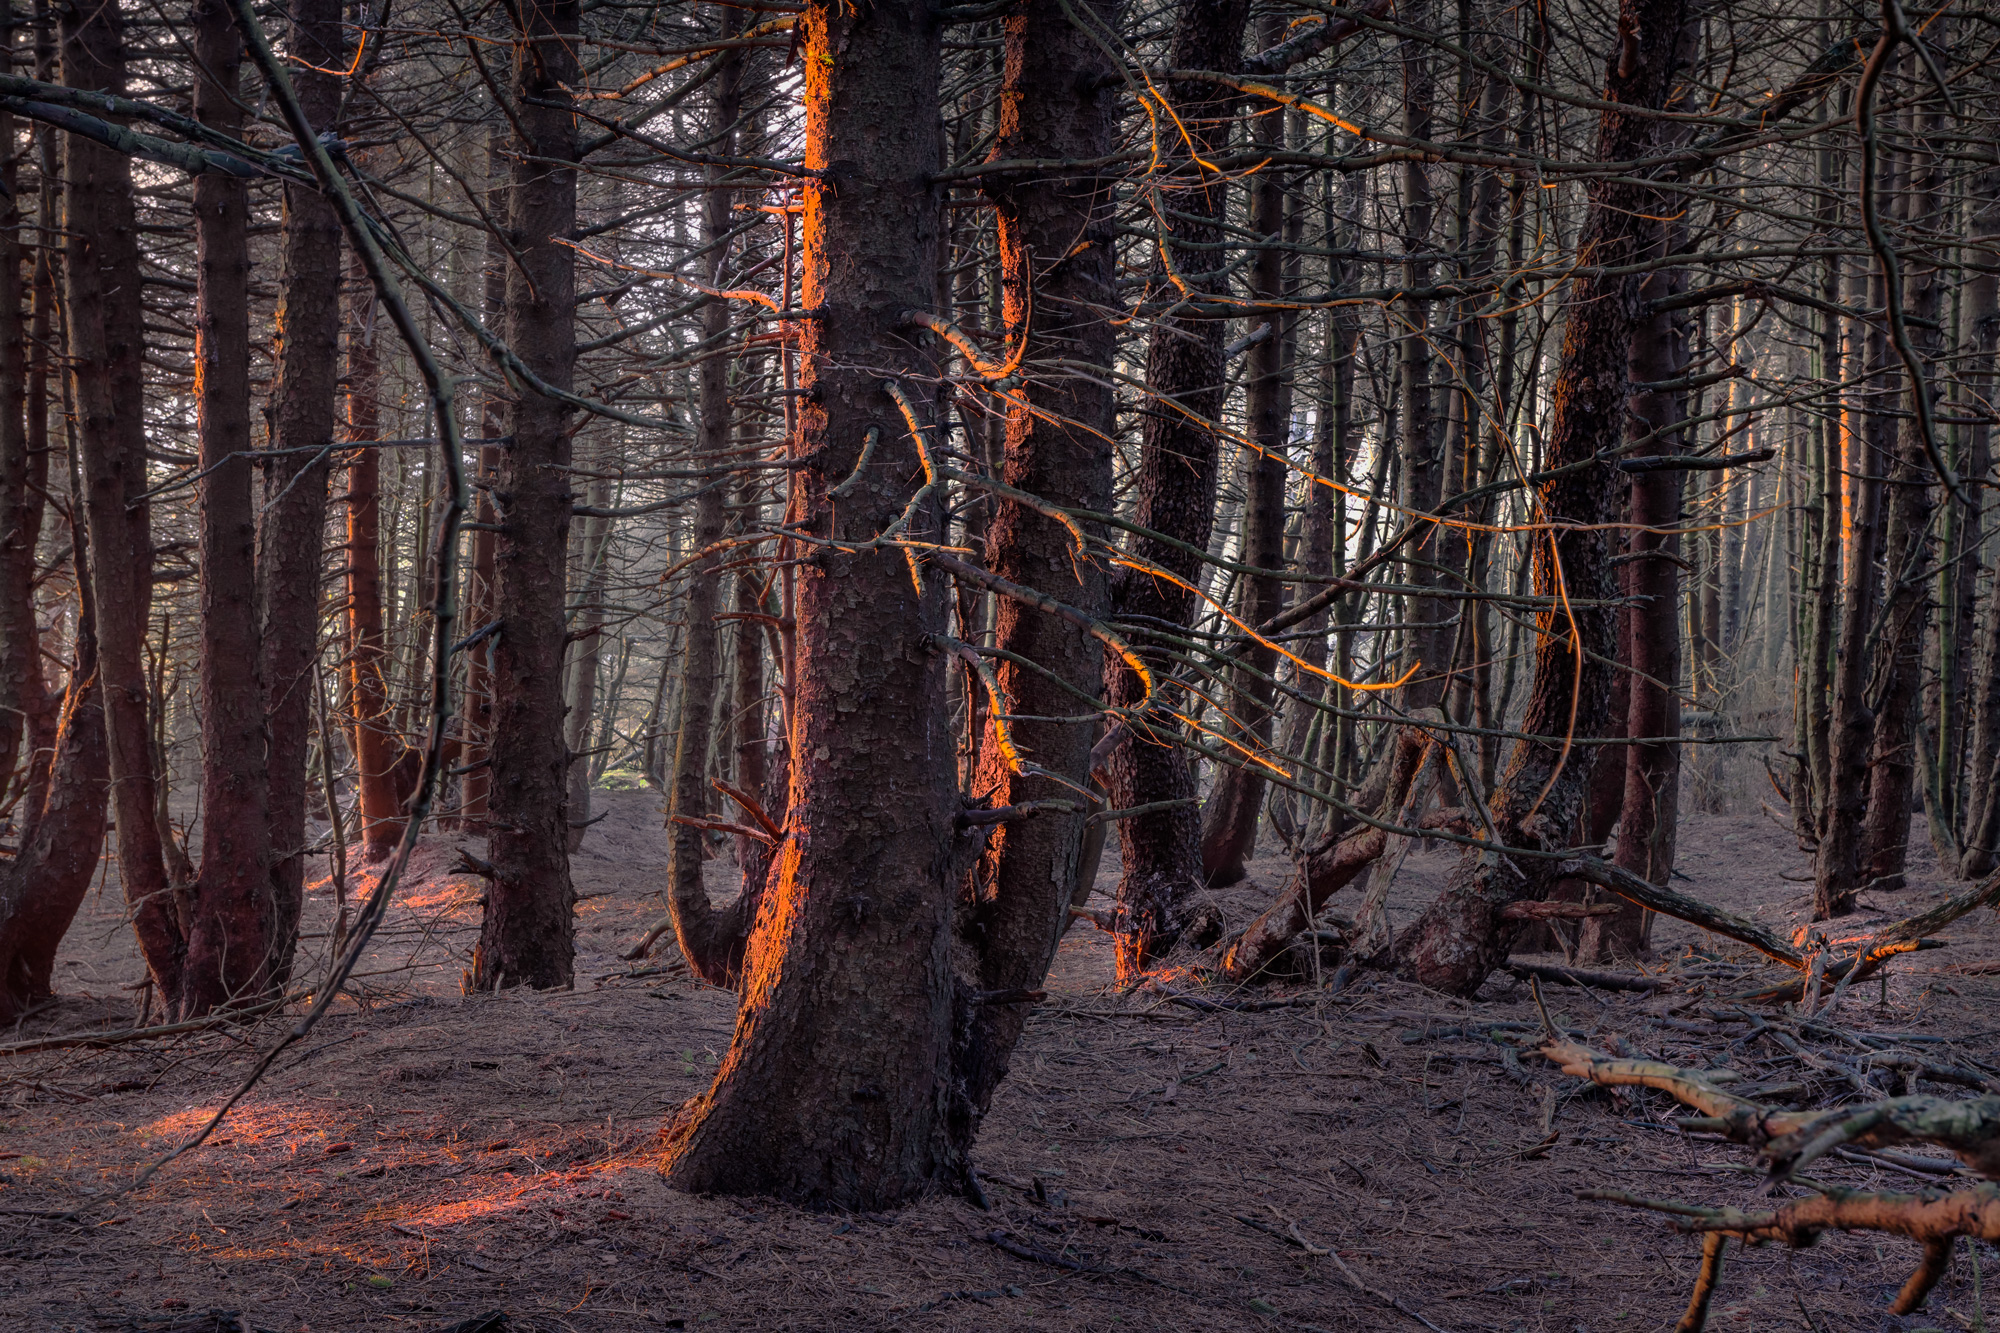 A forest is shown in low sunlight, as though in winter or at dusk. The image is in shades of dark brown, green, blue and orange where light strikes the trees.